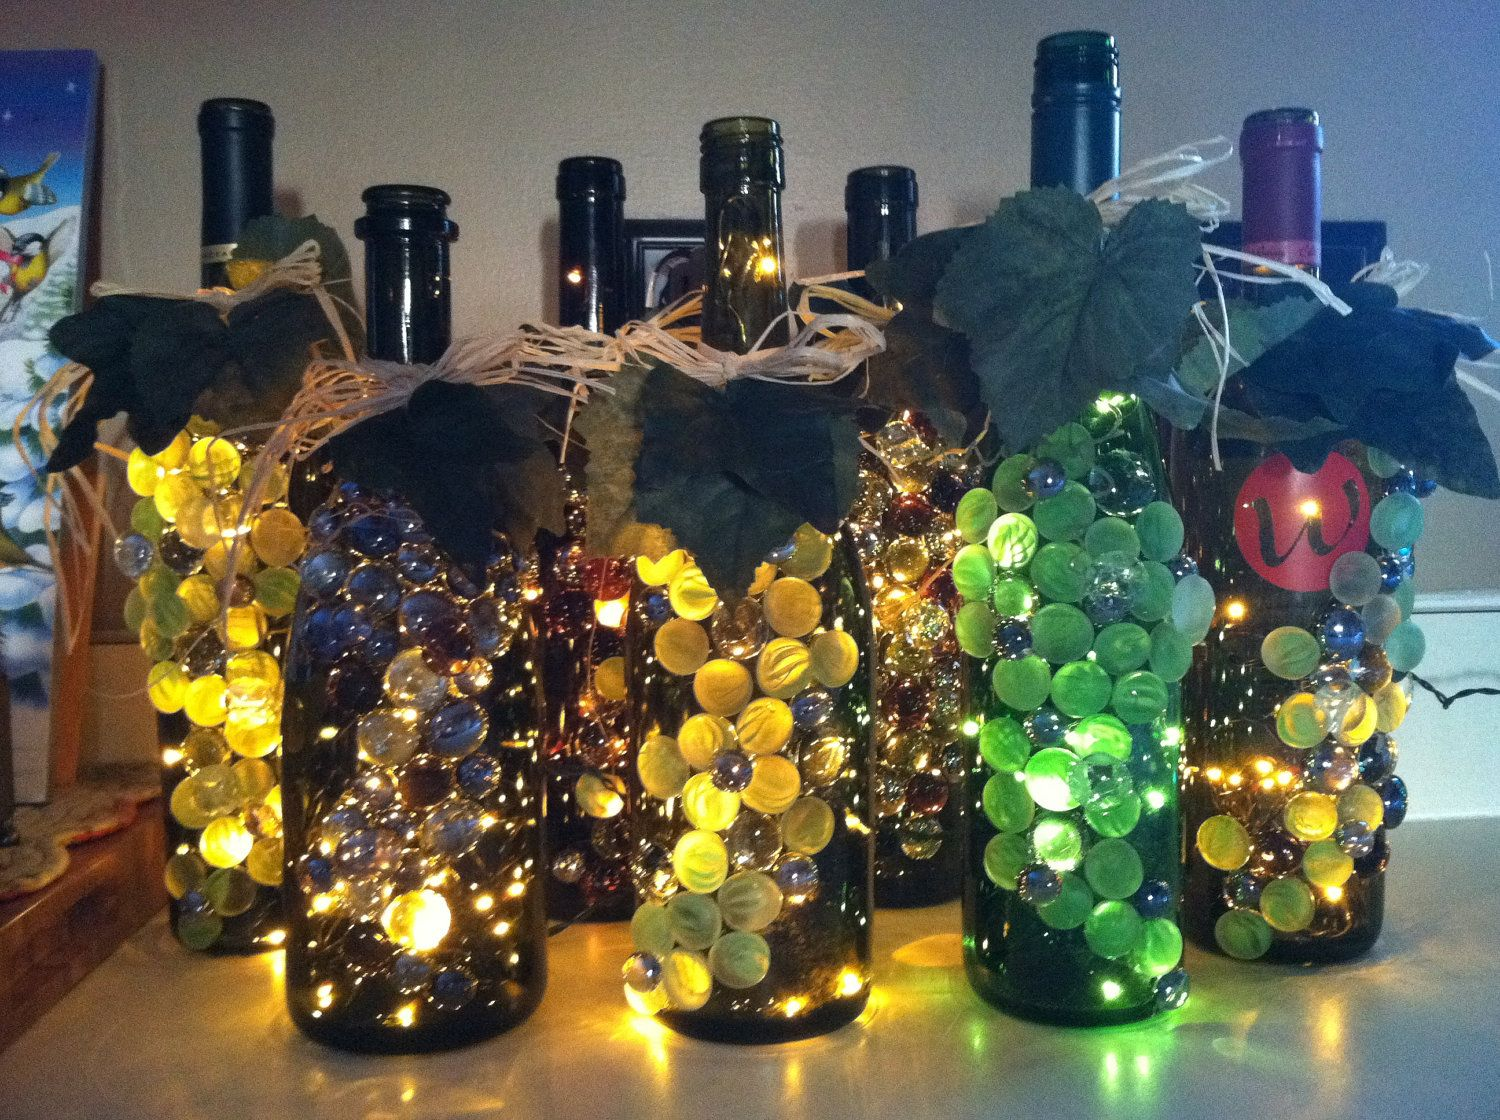 wine bottle lights wine bottle lights by kmarieoriginals. Black Bedroom Furniture Sets. Home Design Ideas